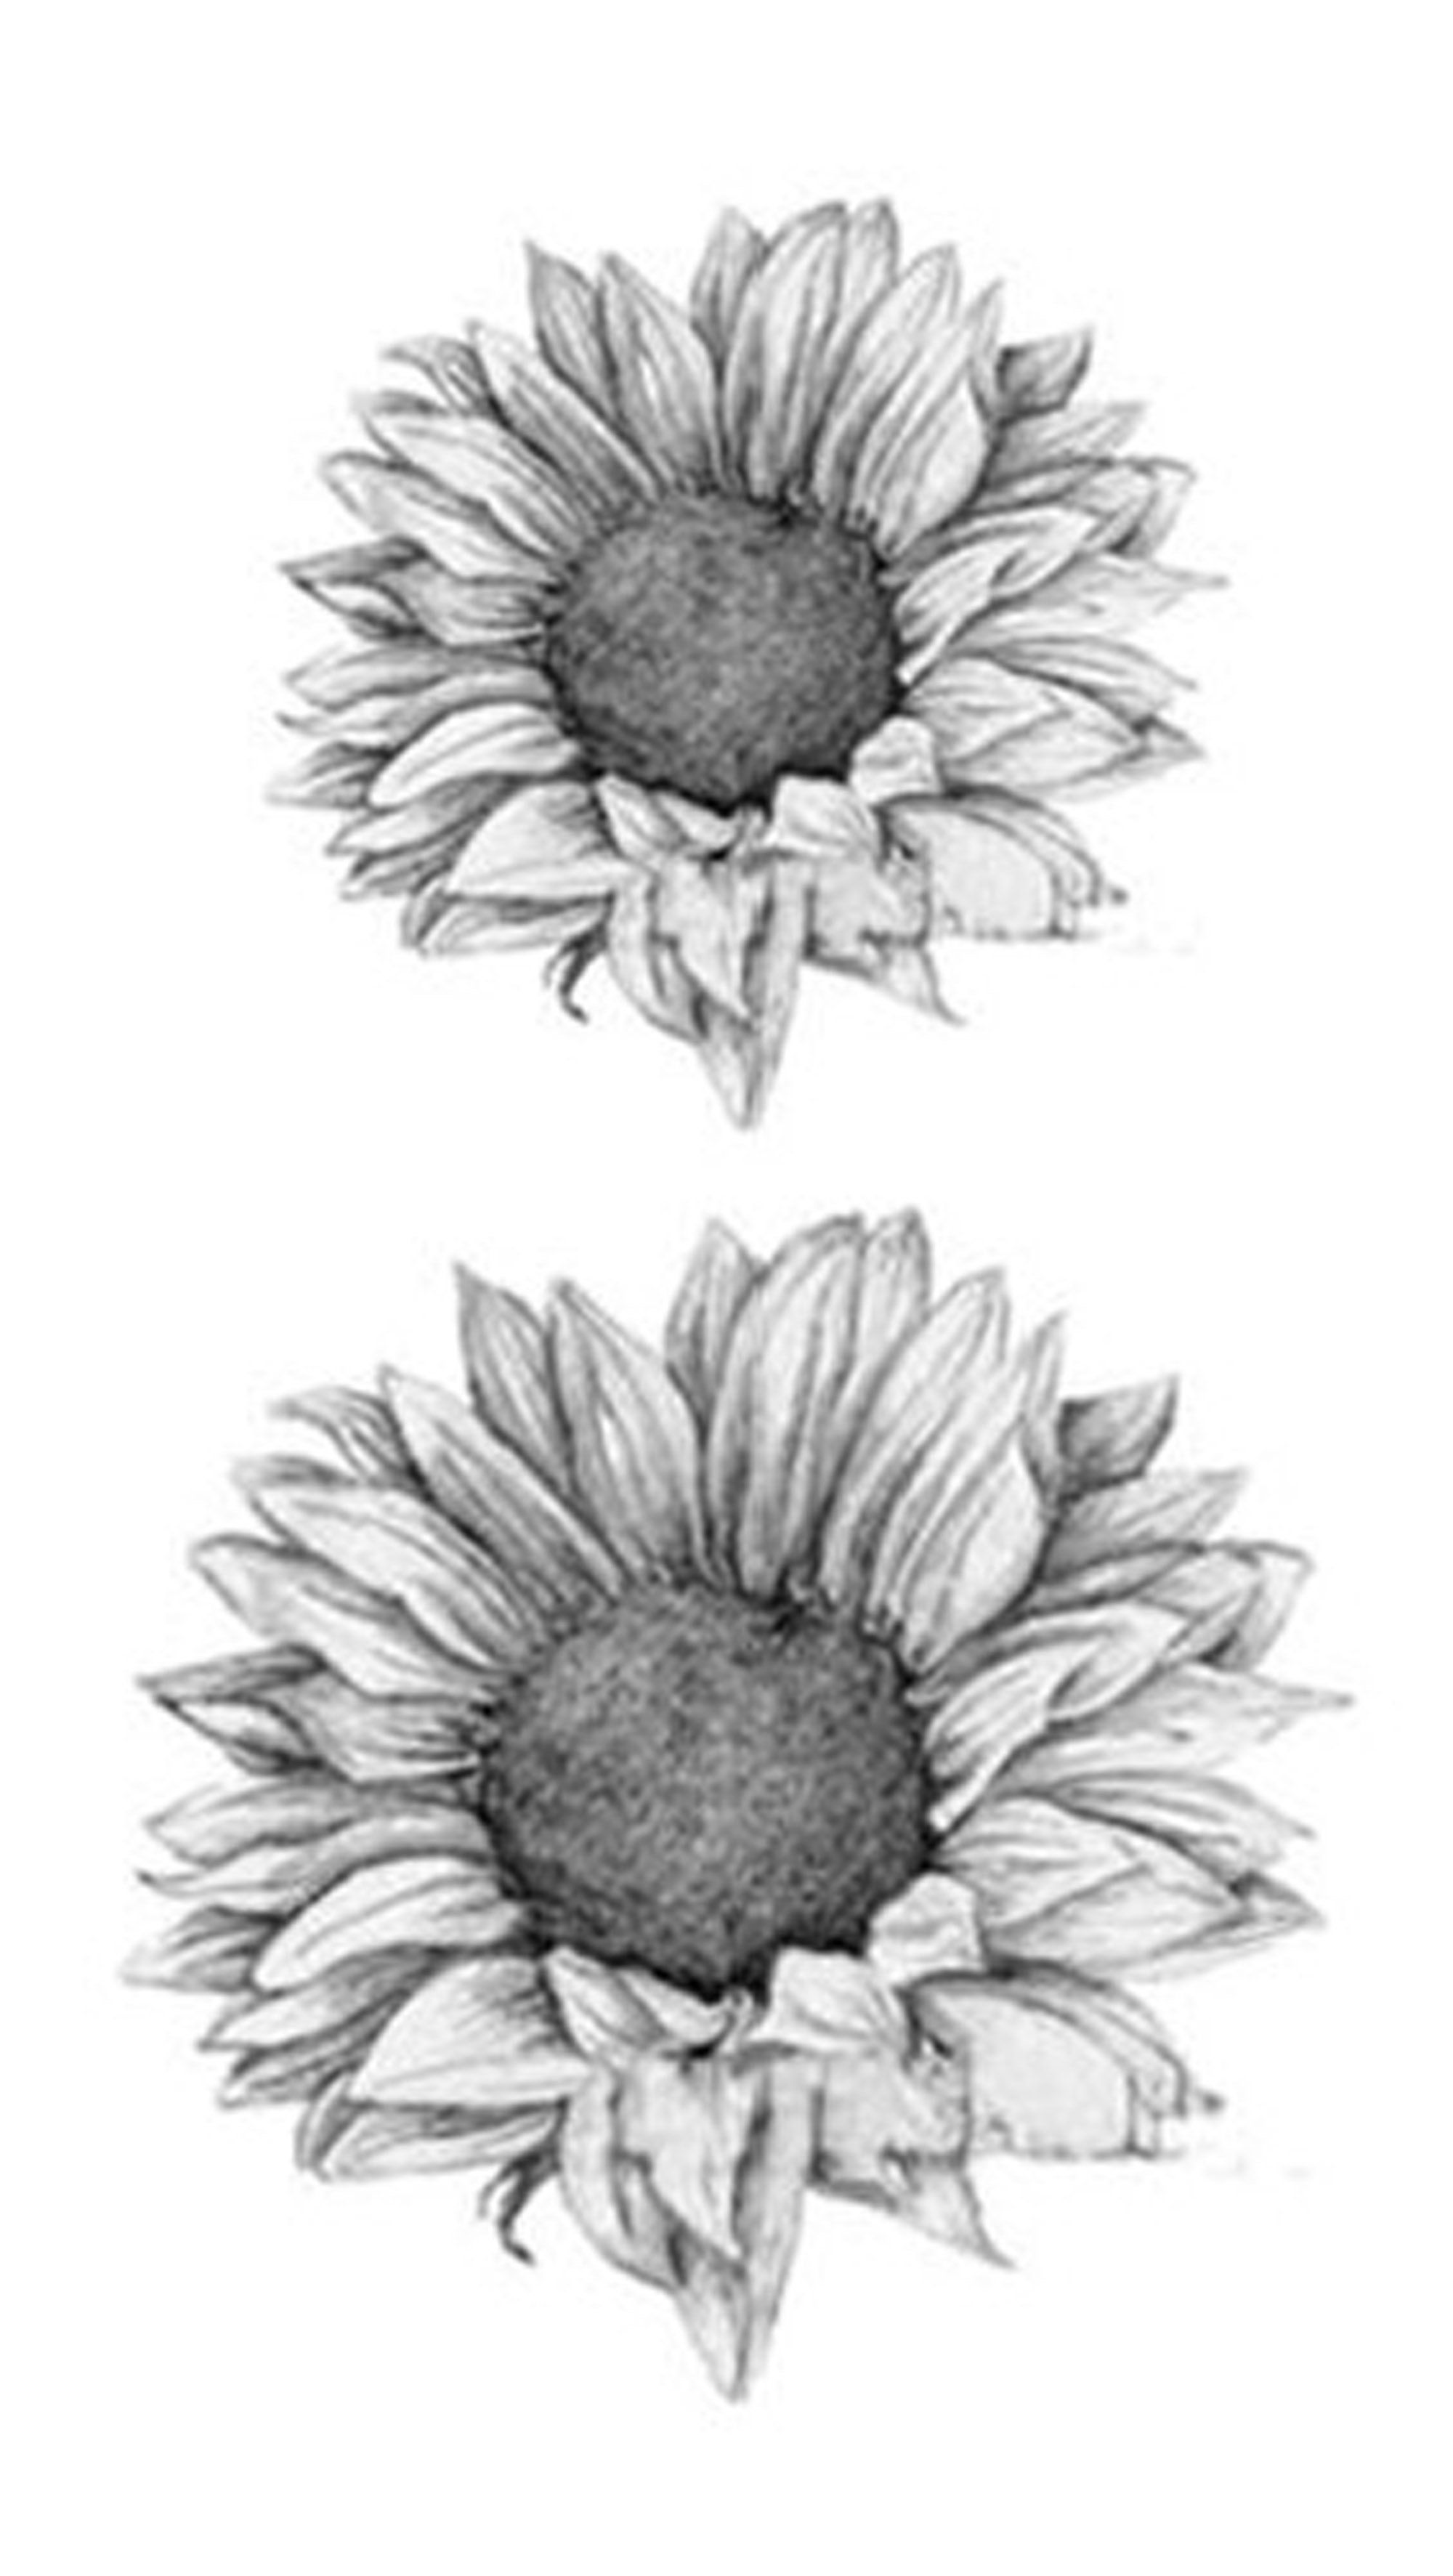 Grace Realistic Black White Sunflower Temporary Tattoo Sunflower Tattoo Thigh White Sunflowers Sunflower Tattoo Shoulder